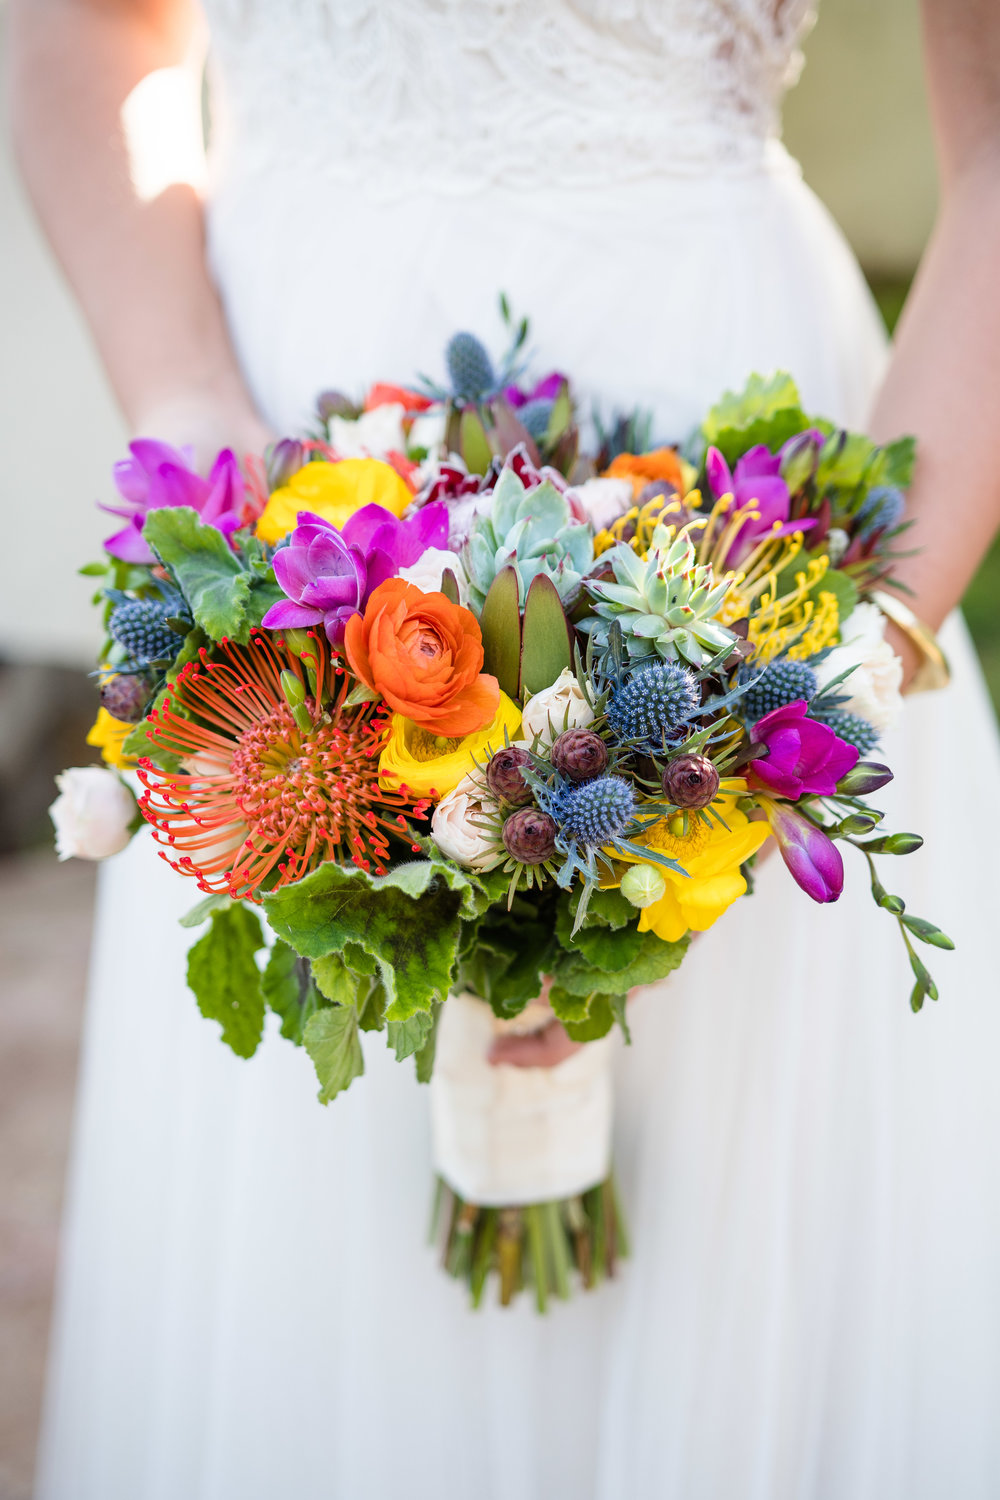 Vibrant Fiesta Backyard Wedding Reception gorgeous spring blooms in bridal bouquet.jpg